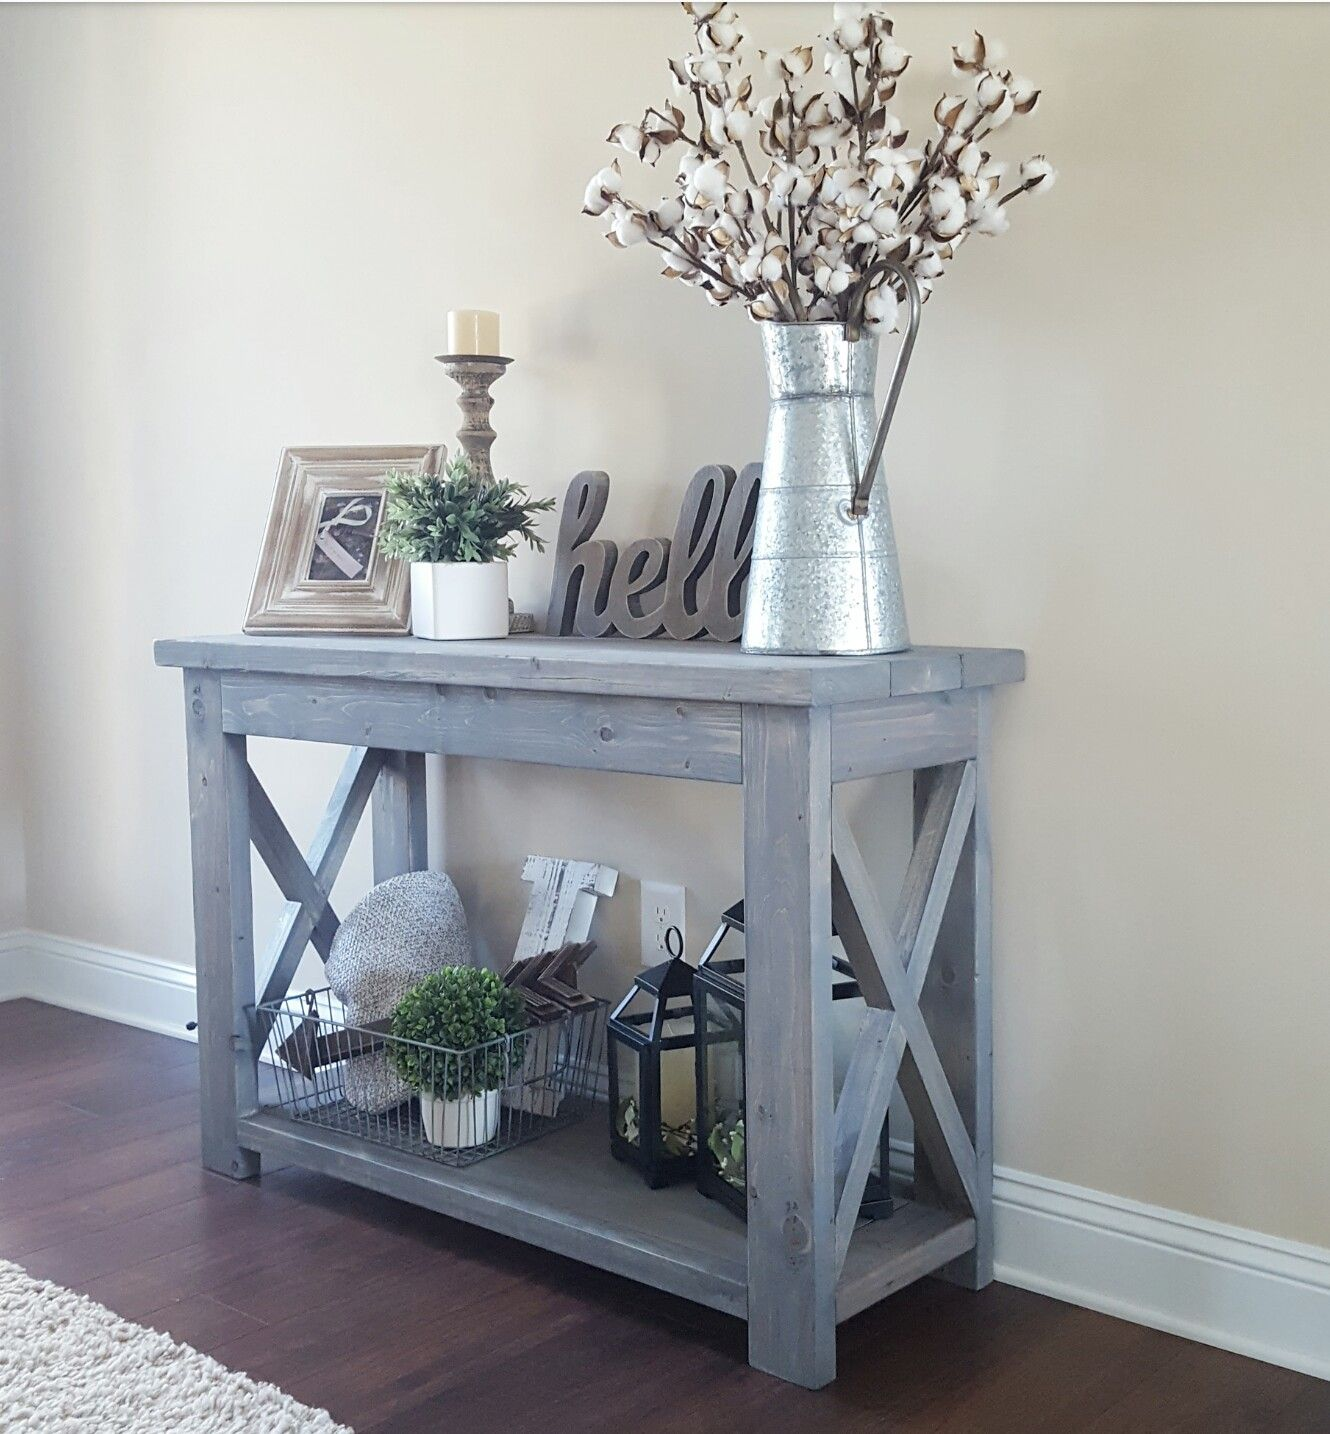 Modified ana whites rustic x console table and used minwax classic gray stain